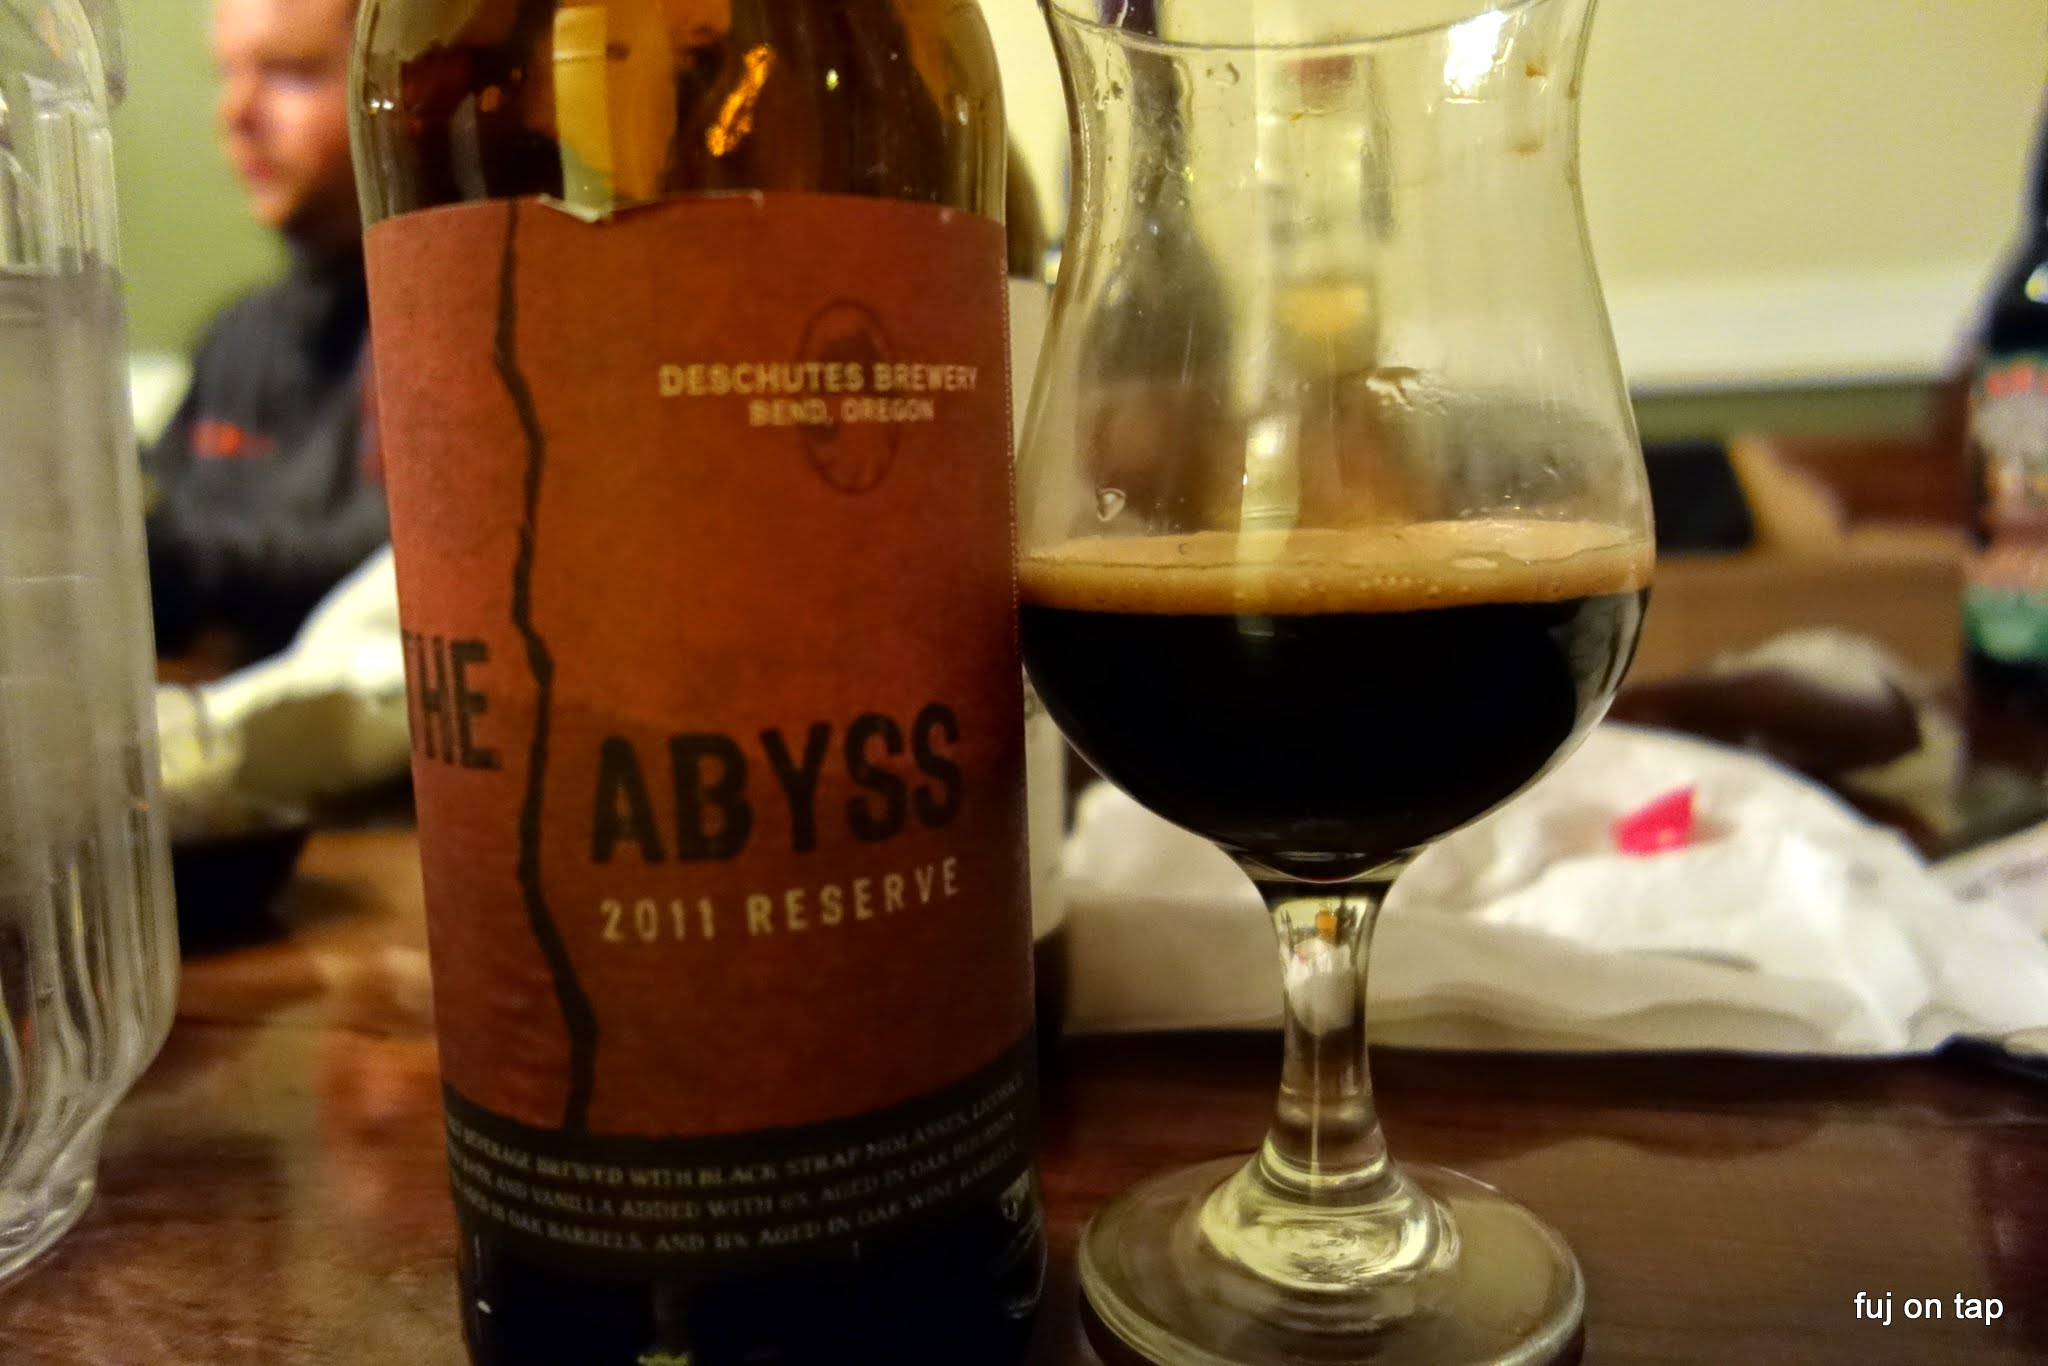 Deschutes 2011 The Abyss